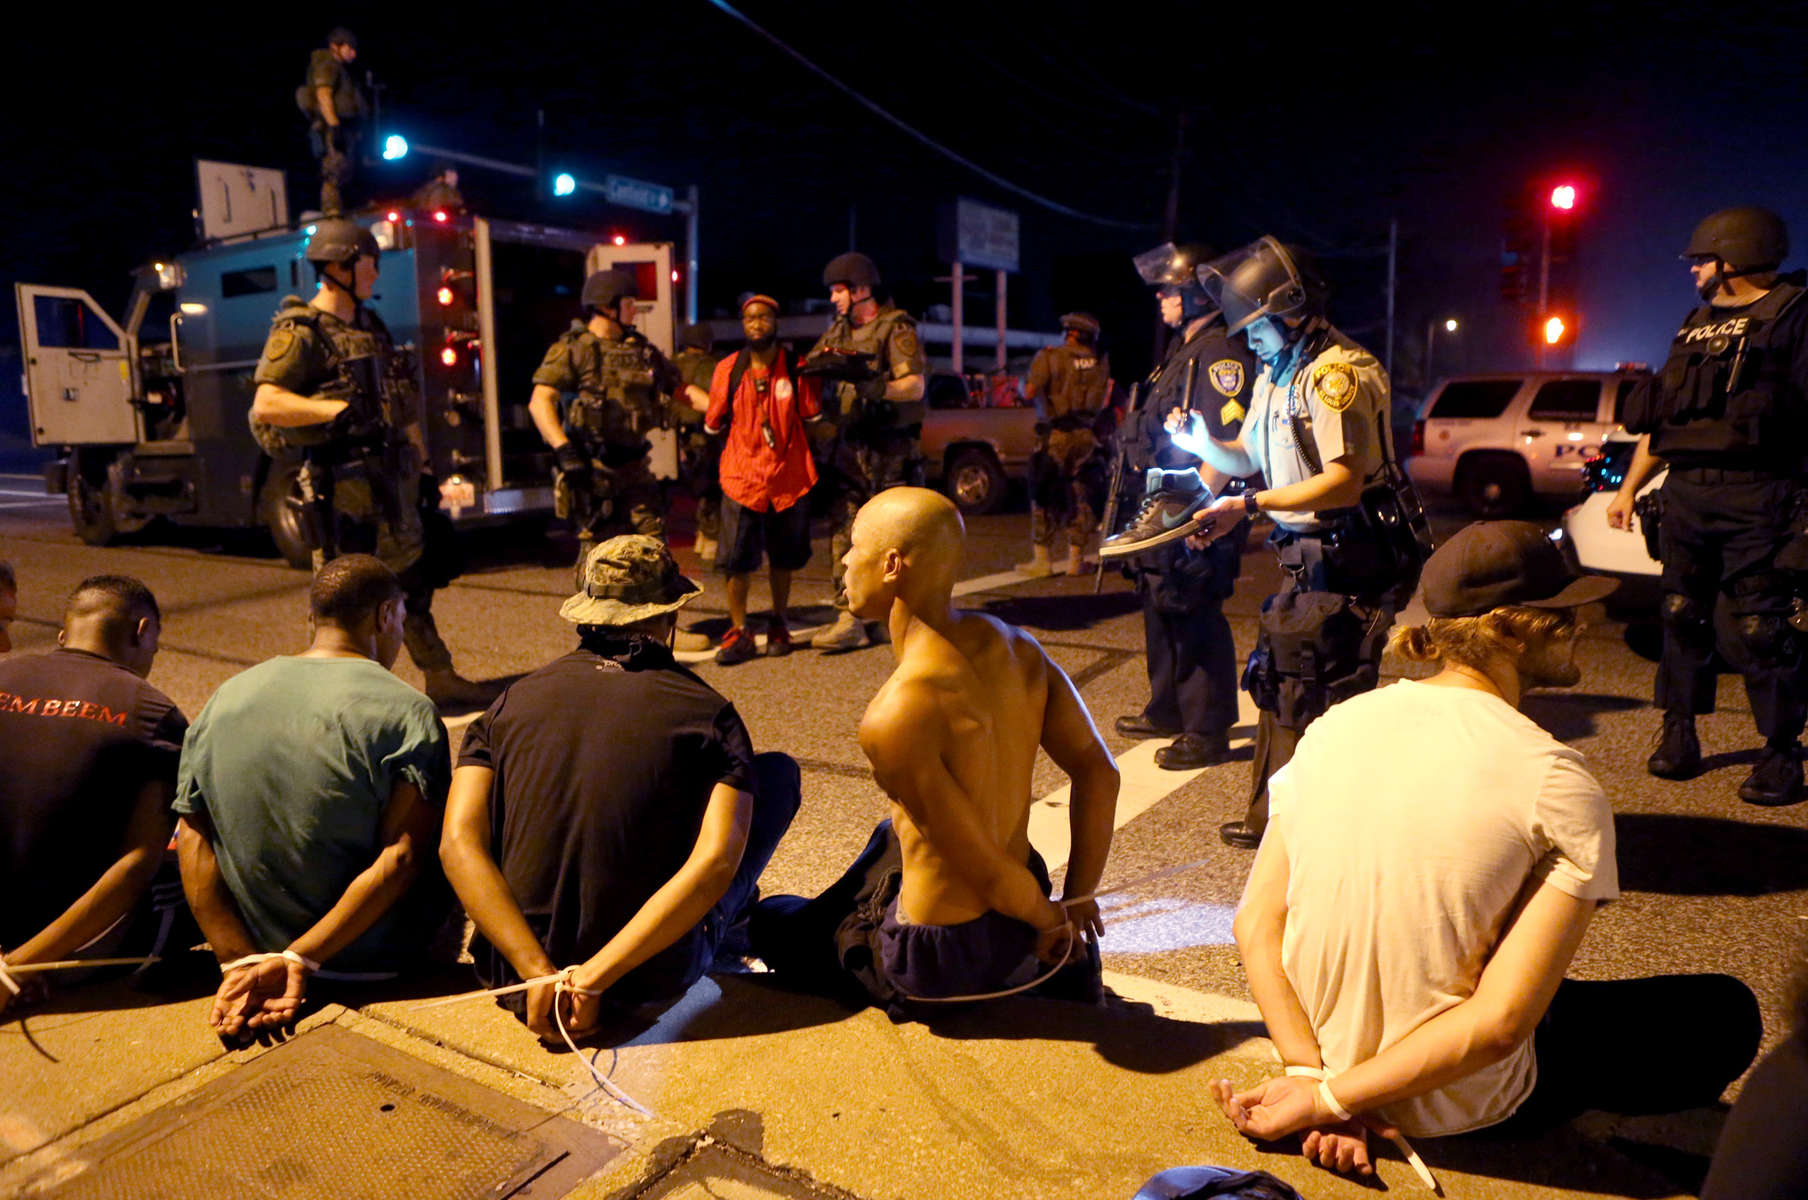 Members of the St. Louis County Police tactical team take a truck load of 12 people into custody after they stopped it driving along W. Florissant Road near Canfield Drive in Ferguson, Mo. on Tuesday, Aug. 19, 2014.  The police found two loaded guns on the people in the truck and removed a large Molotov cocktail from the truck.